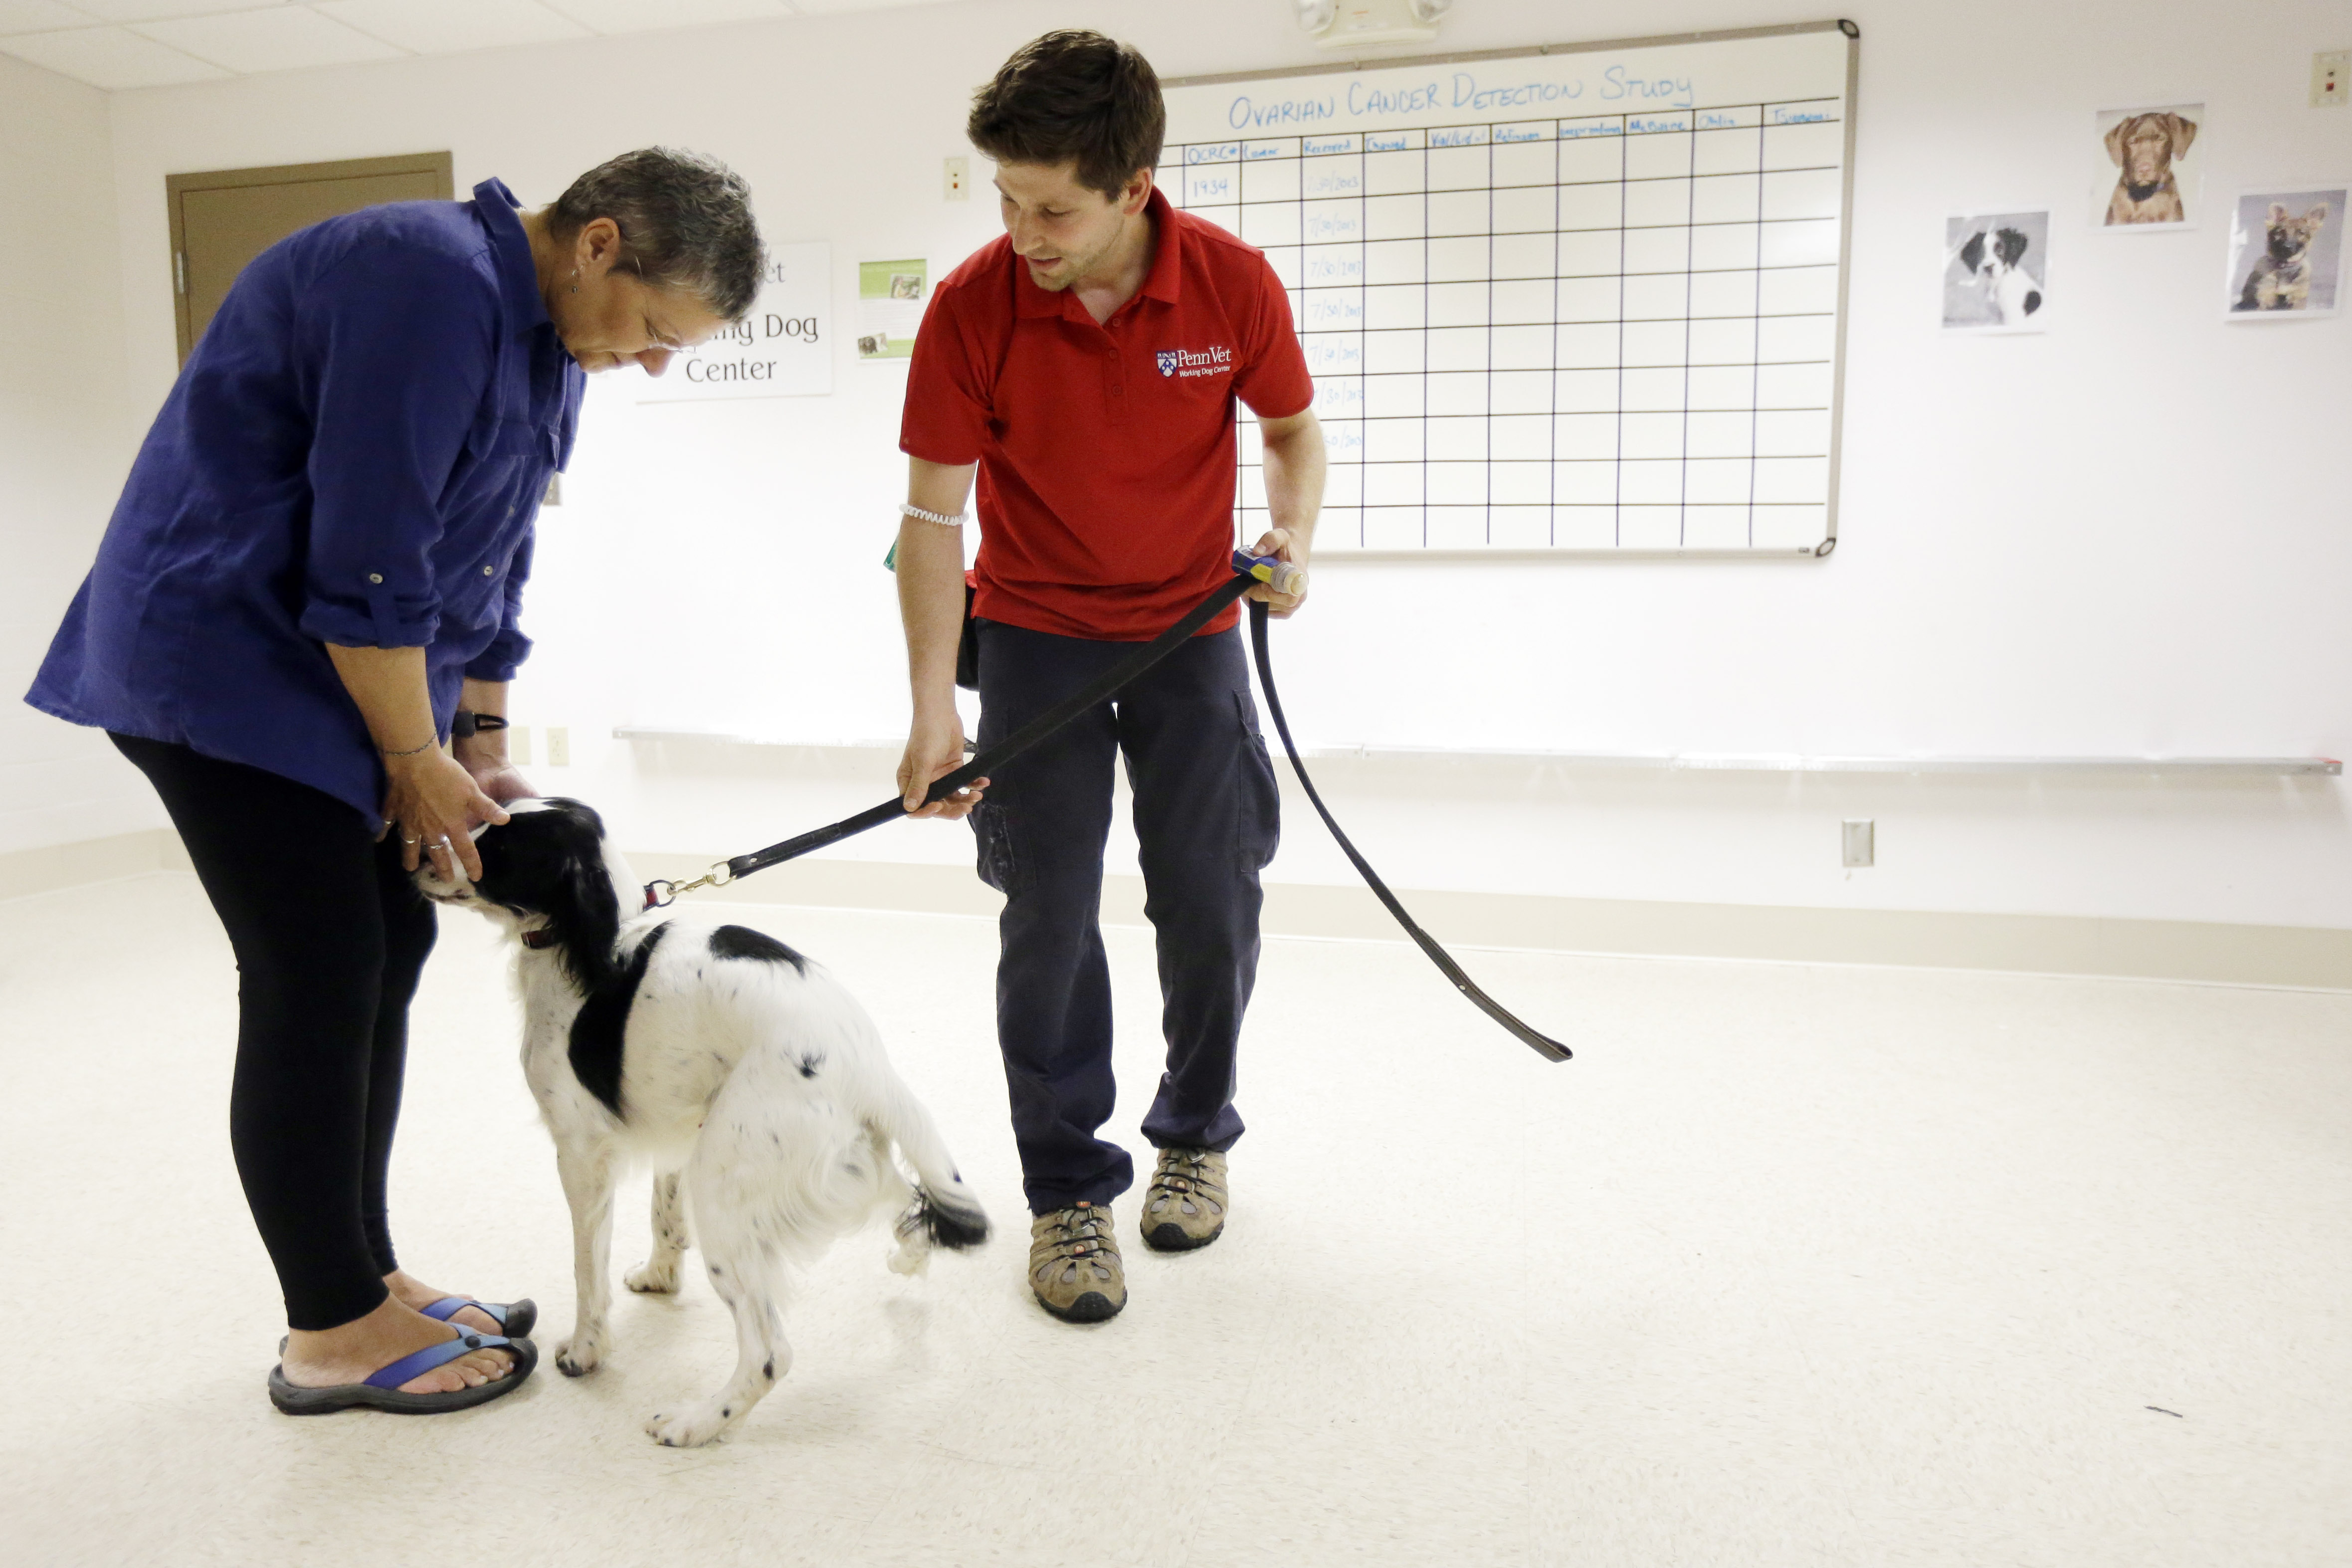 Dogs Help Sniff Out Ovarian Cancer In Pa Study The Boston Globe